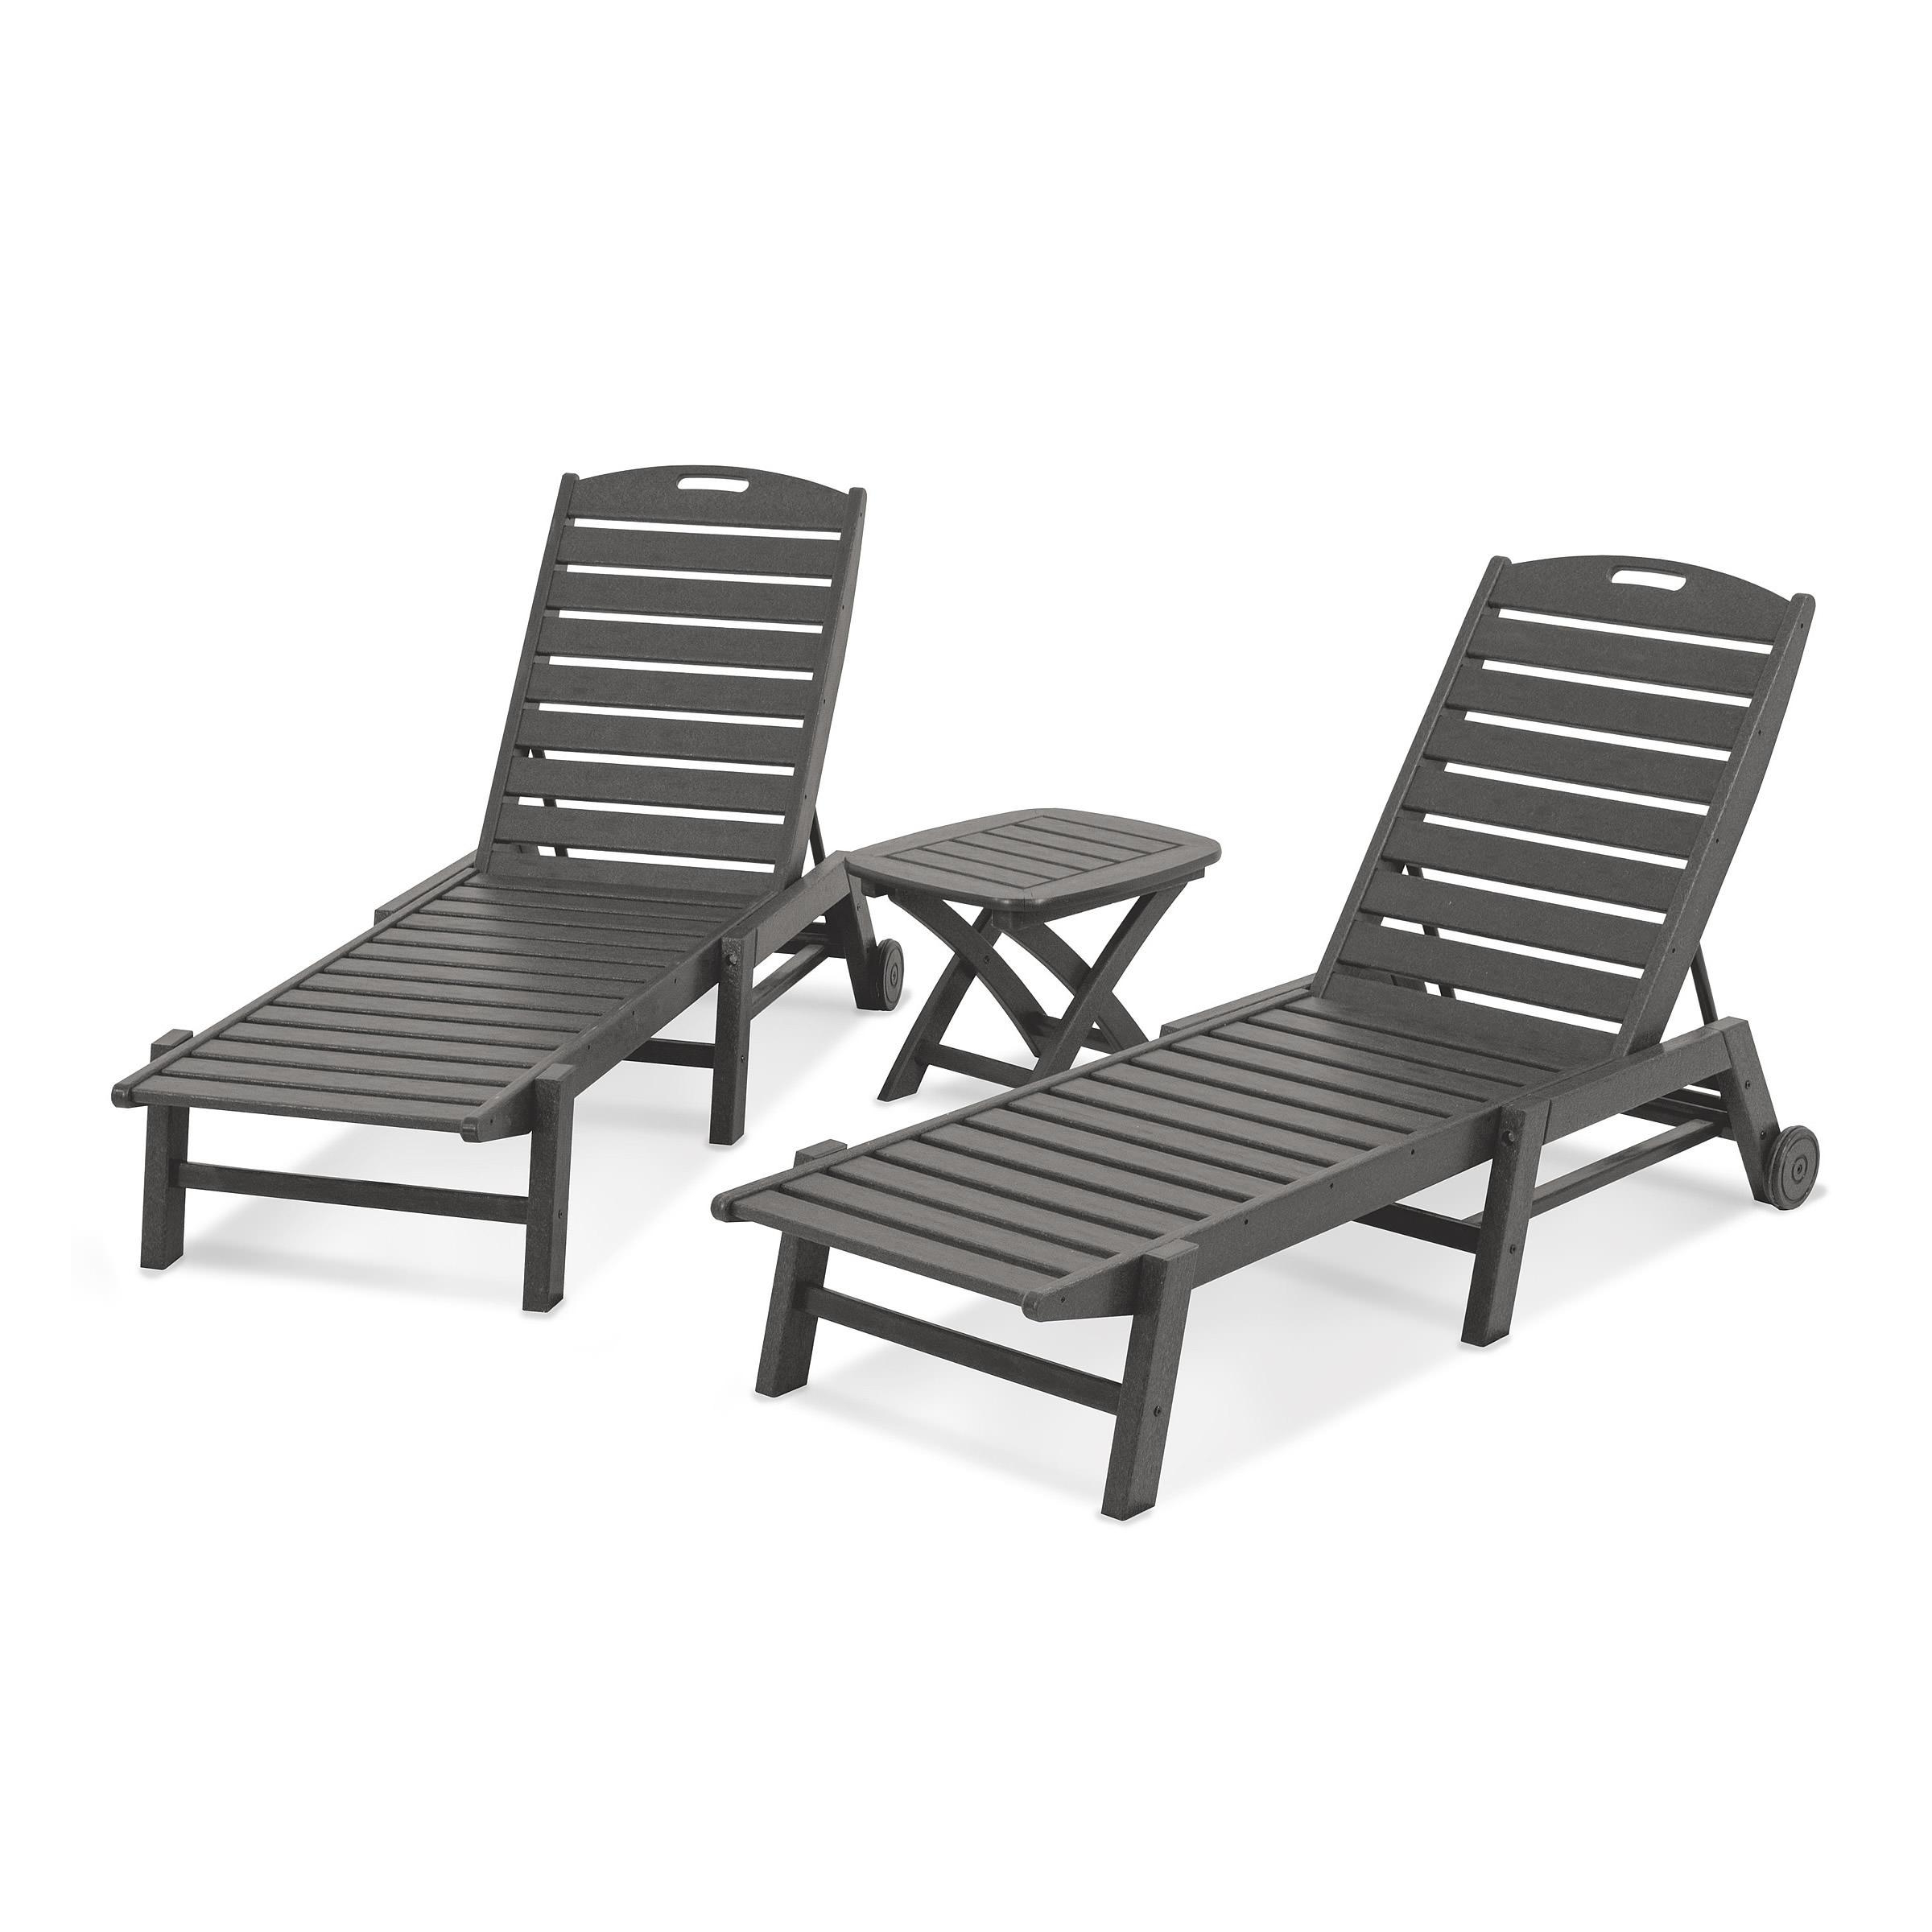 Current Nautical 3 Piece Outdoor Chaise Lounge Sets With Table Intended For Polywood® Nautical 3 Piece Armless Chaise Set (View 7 of 25)